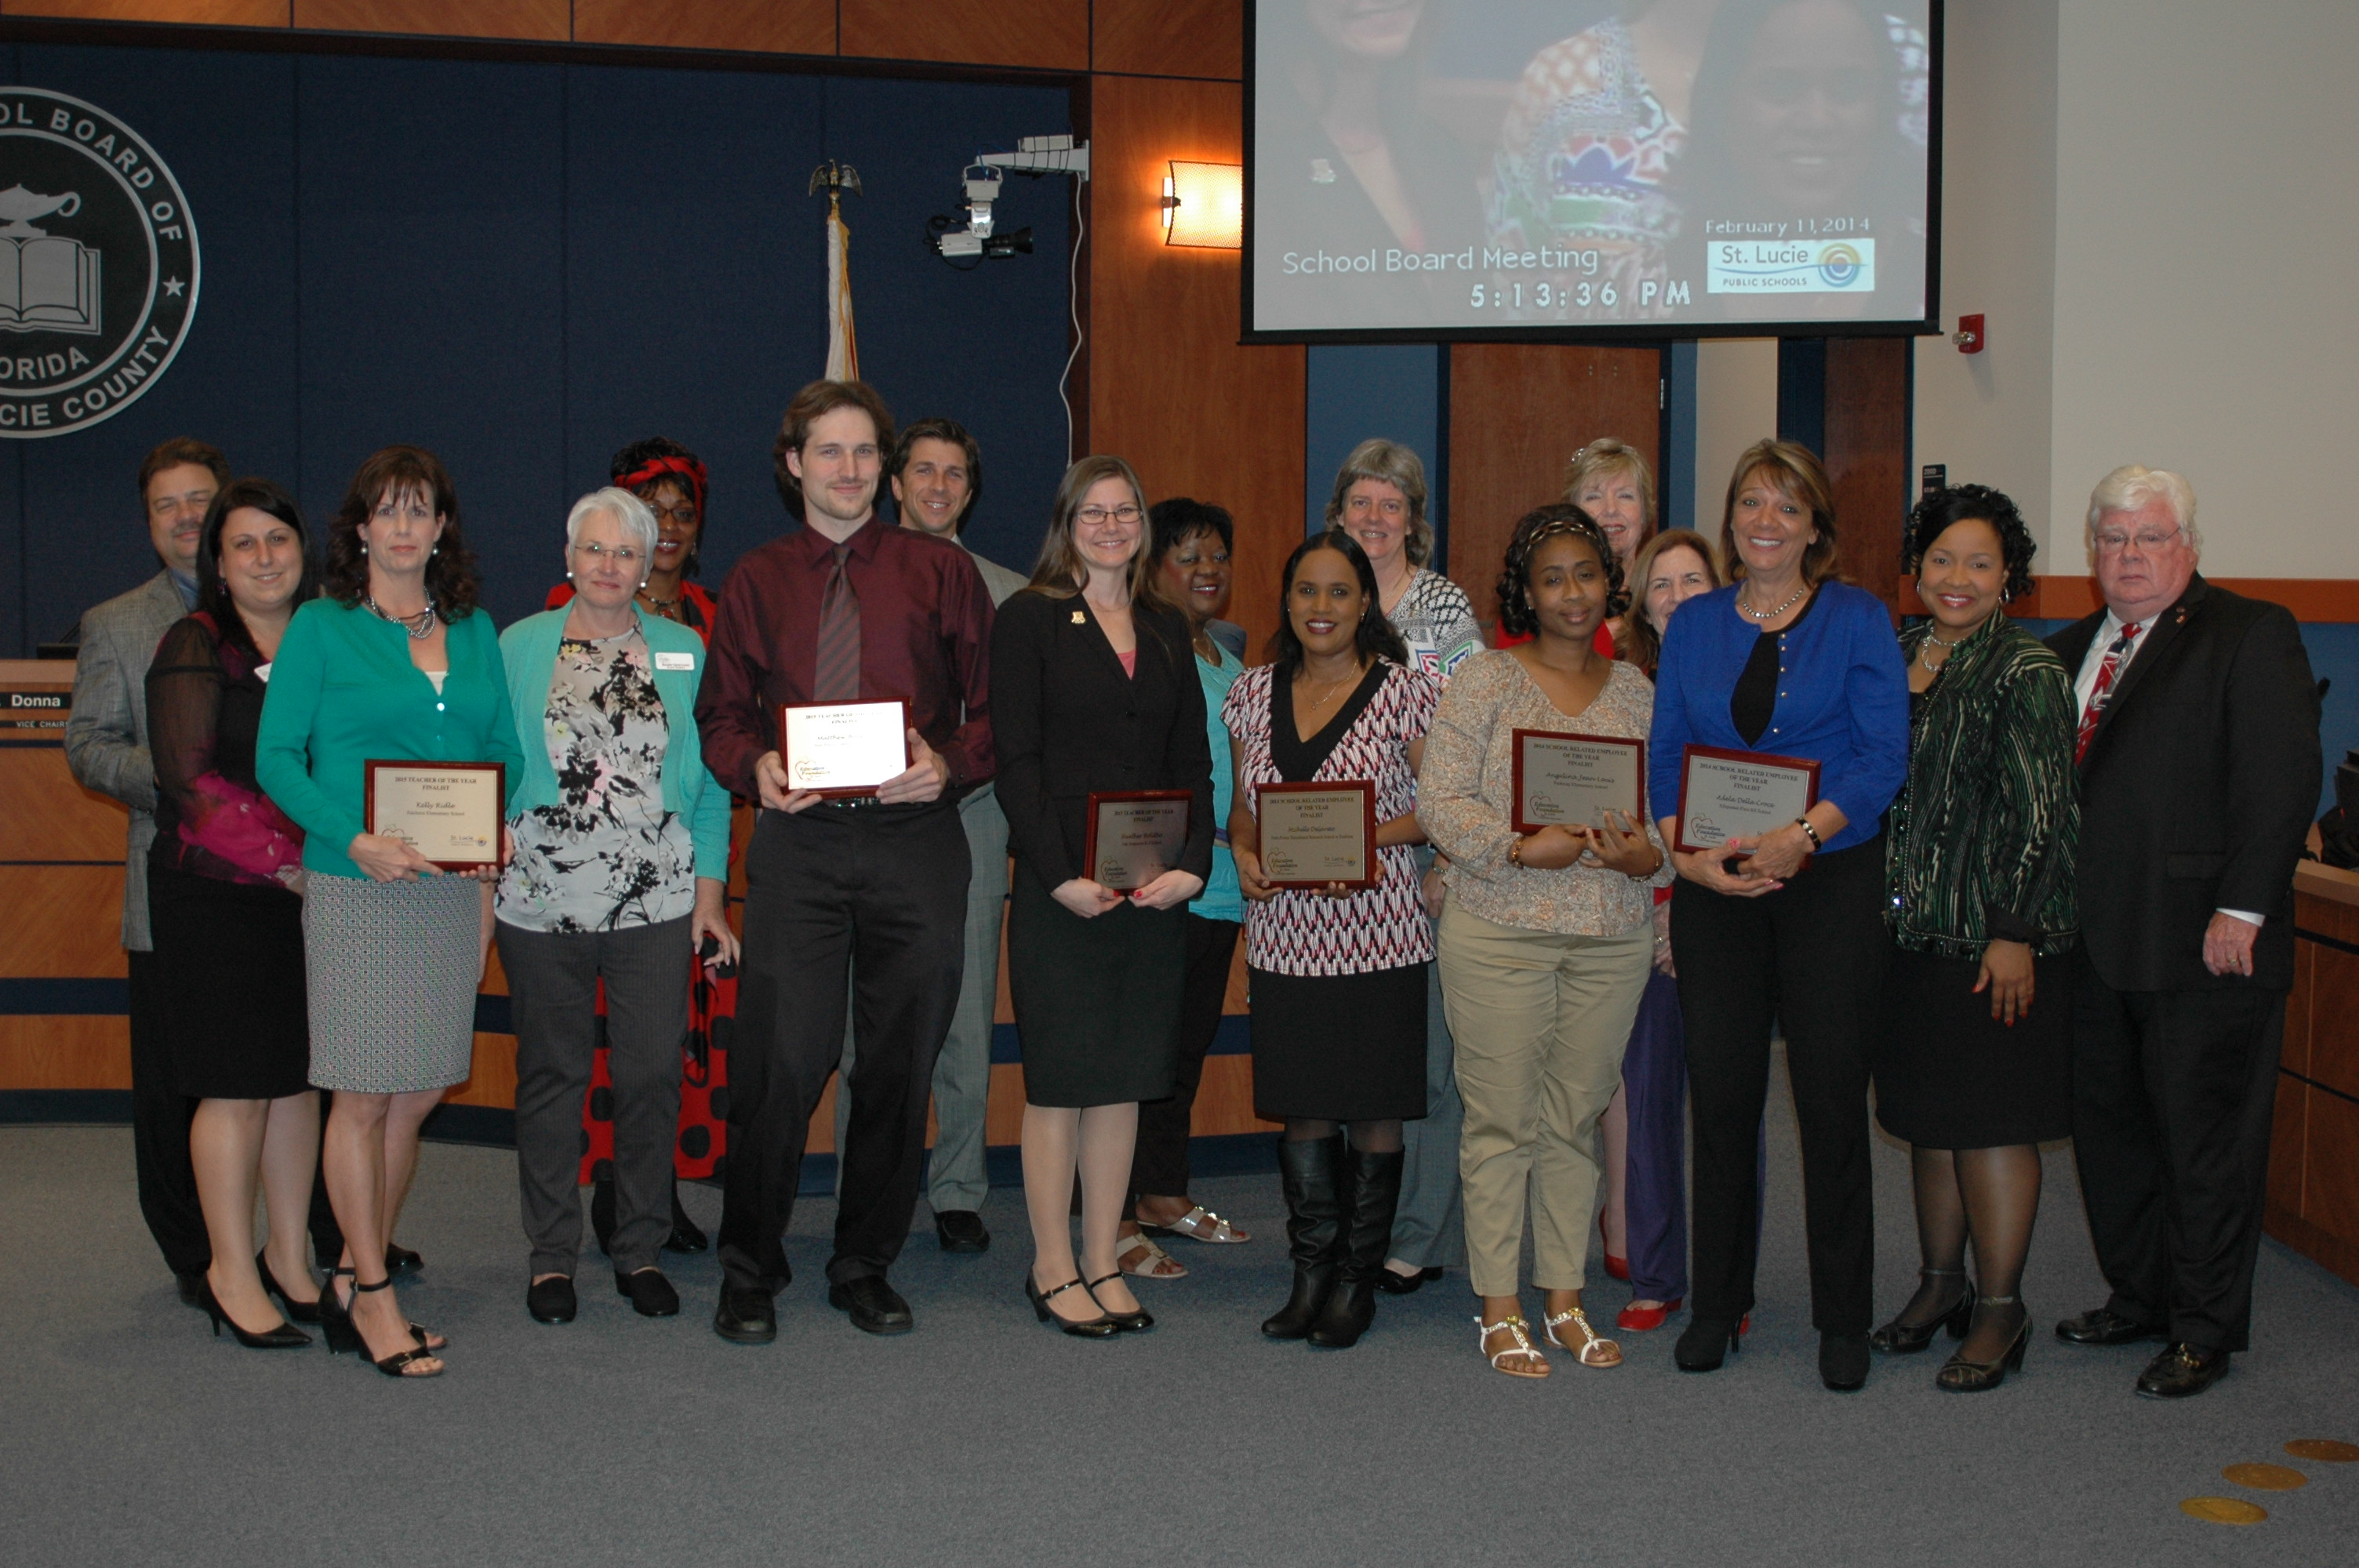 Employee of the year finalists recognized